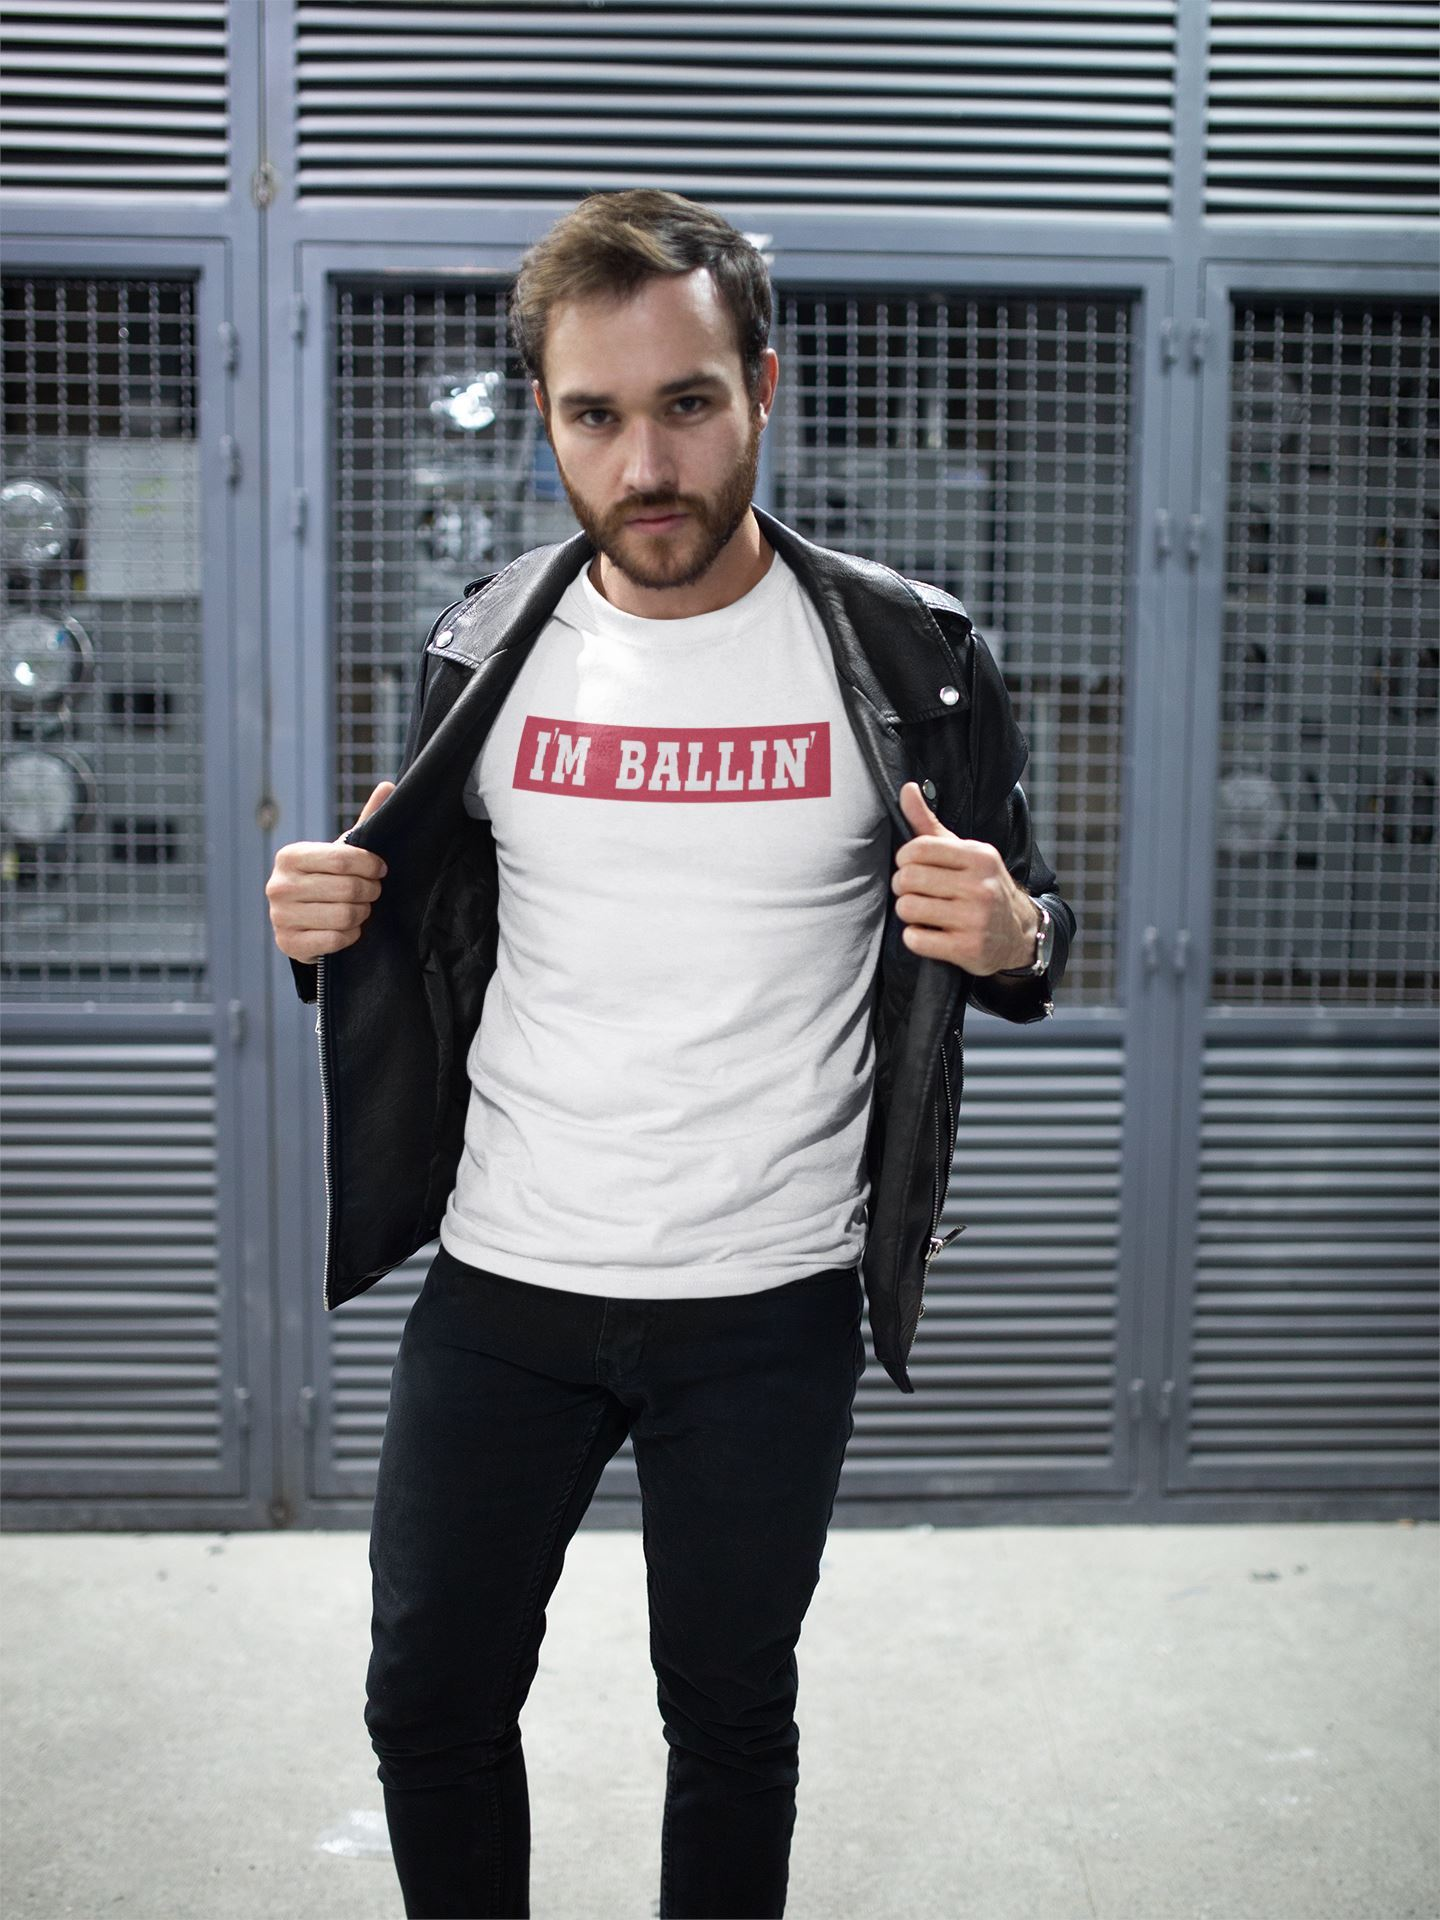 I'm Ballin' Tee EntrepreneurKing.co White S